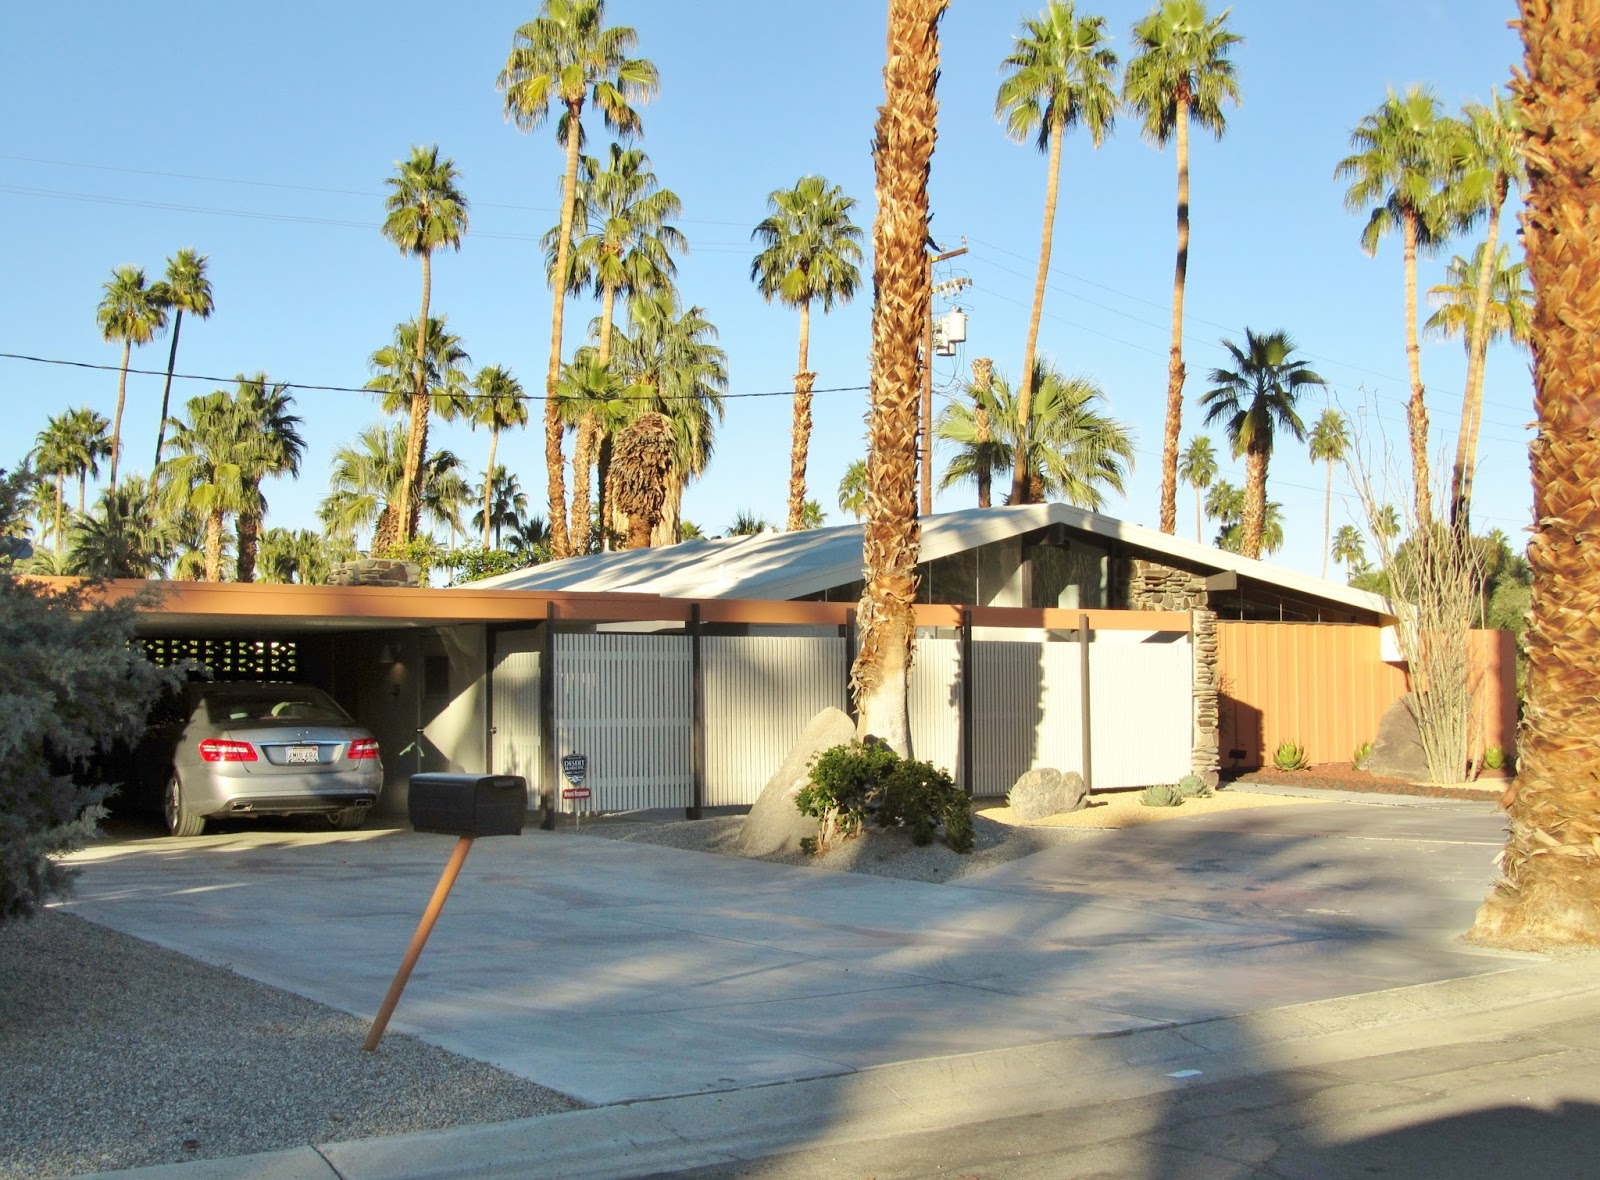 Twin Palms Estates - Palm Springs, CA - The Krisel Connection on map of palm springs and surrounding areas, map of downtown little rock ar, map of greater palm springs, map of downtown myrtle beach sc, map of downtown new orleans la, map of downtown dayton oh, map of california showing palm springs, map of joshua tree national park ca, map of downtown colorado springs co, map of palm springs attractions, map of downtown las vegas nv, map of downtown yakima wa, map of downtown jackson hole wy, map of ontario mills mall ca, map of kearny mesa ca, map of downtown amarillo tx, map of downtown green bay wi, map of downtown oklahoma city ok, map of big bear lake ca, map of southern california palm springs,